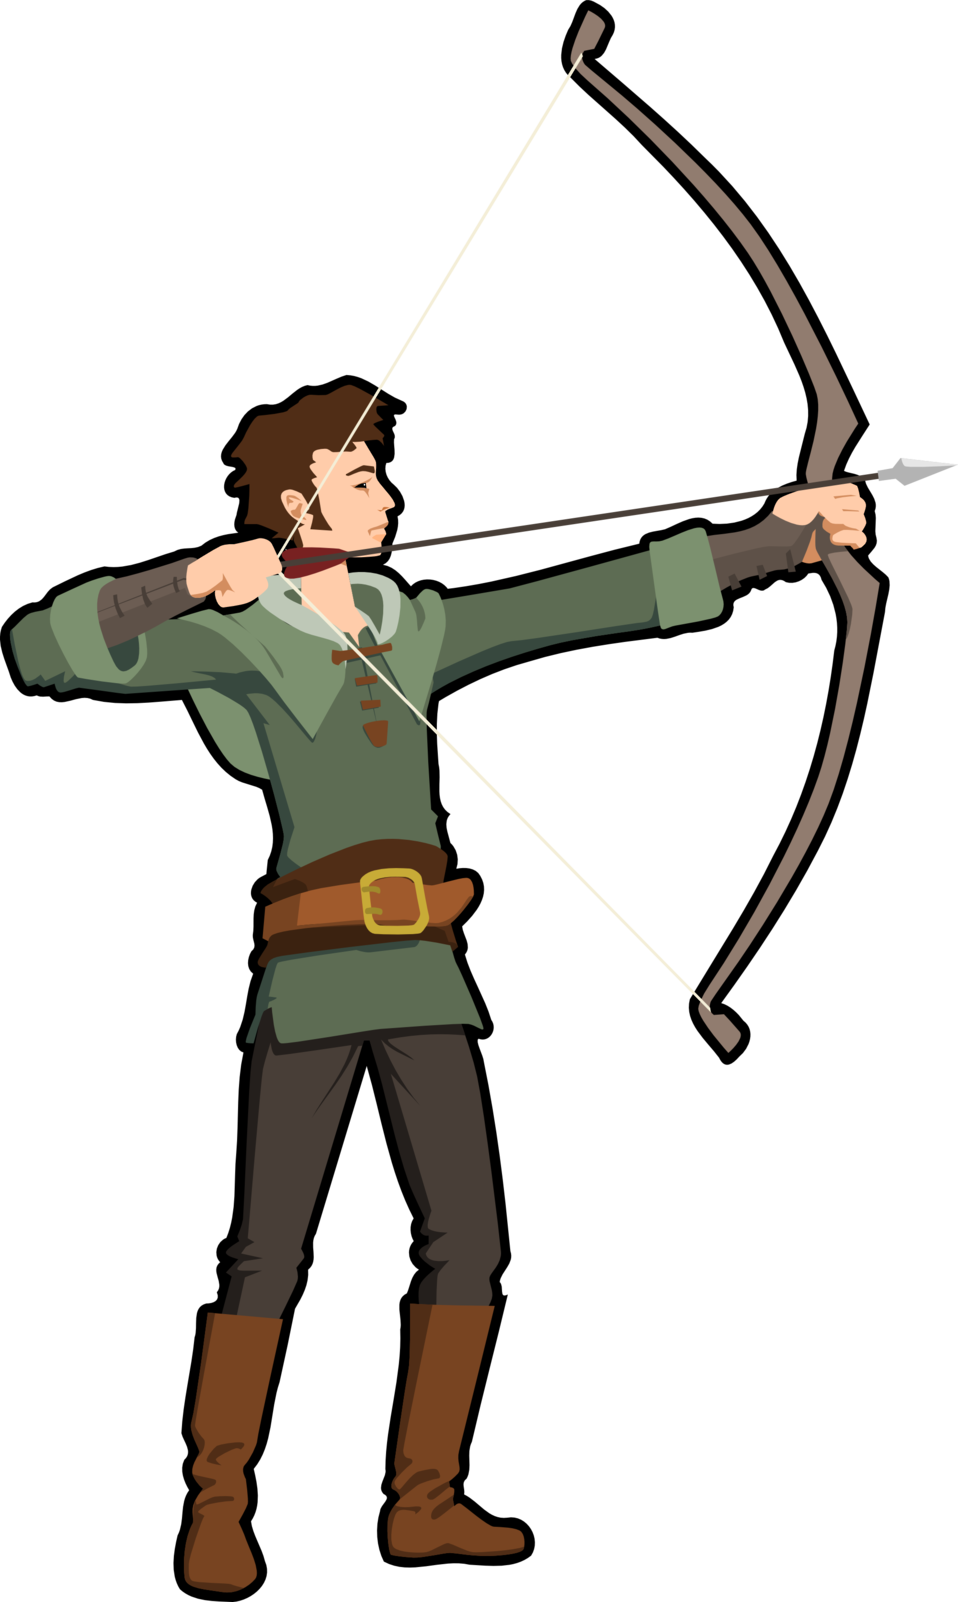 Cross bow clipart png royalty free stock Archer Clipart at GetDrawings.com | Free for personal use Archer ... png royalty free stock